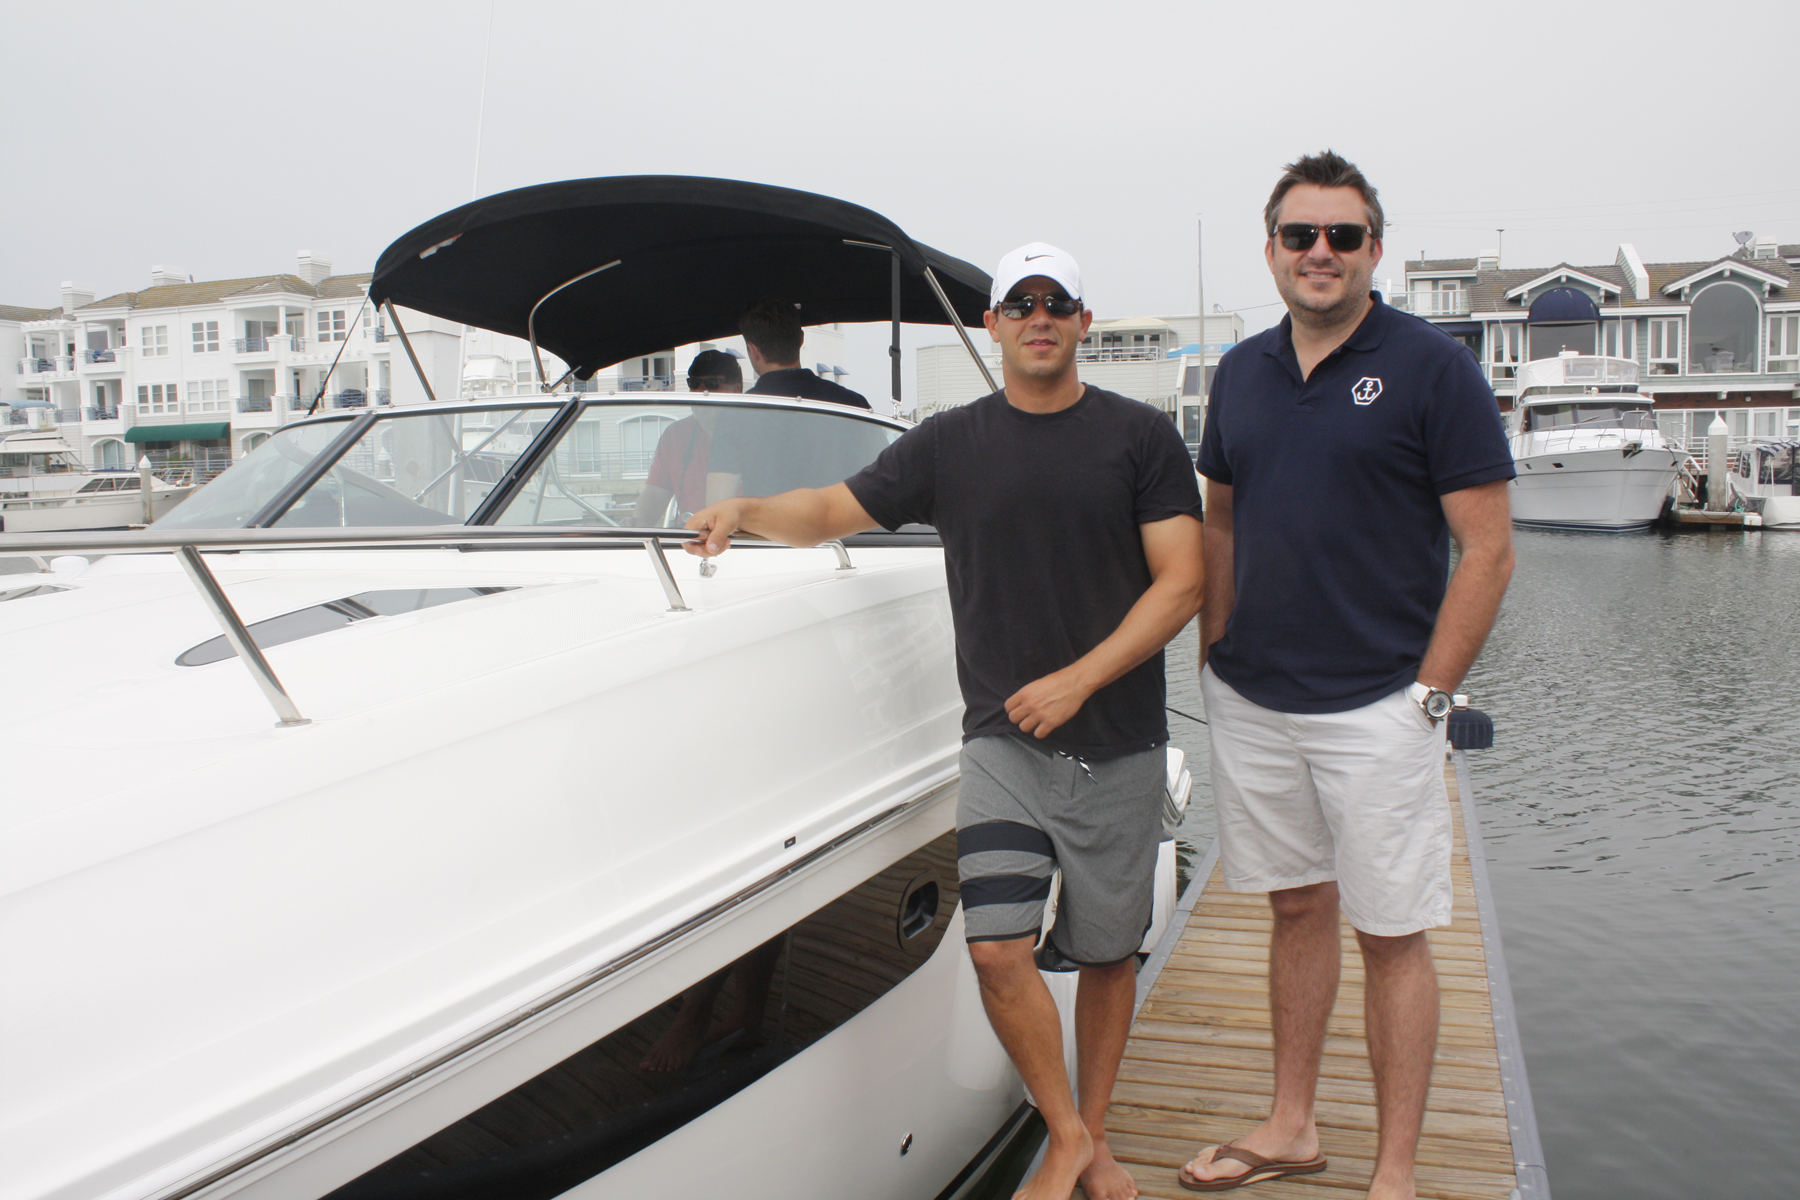 Newport Beach Boat Slip Rental